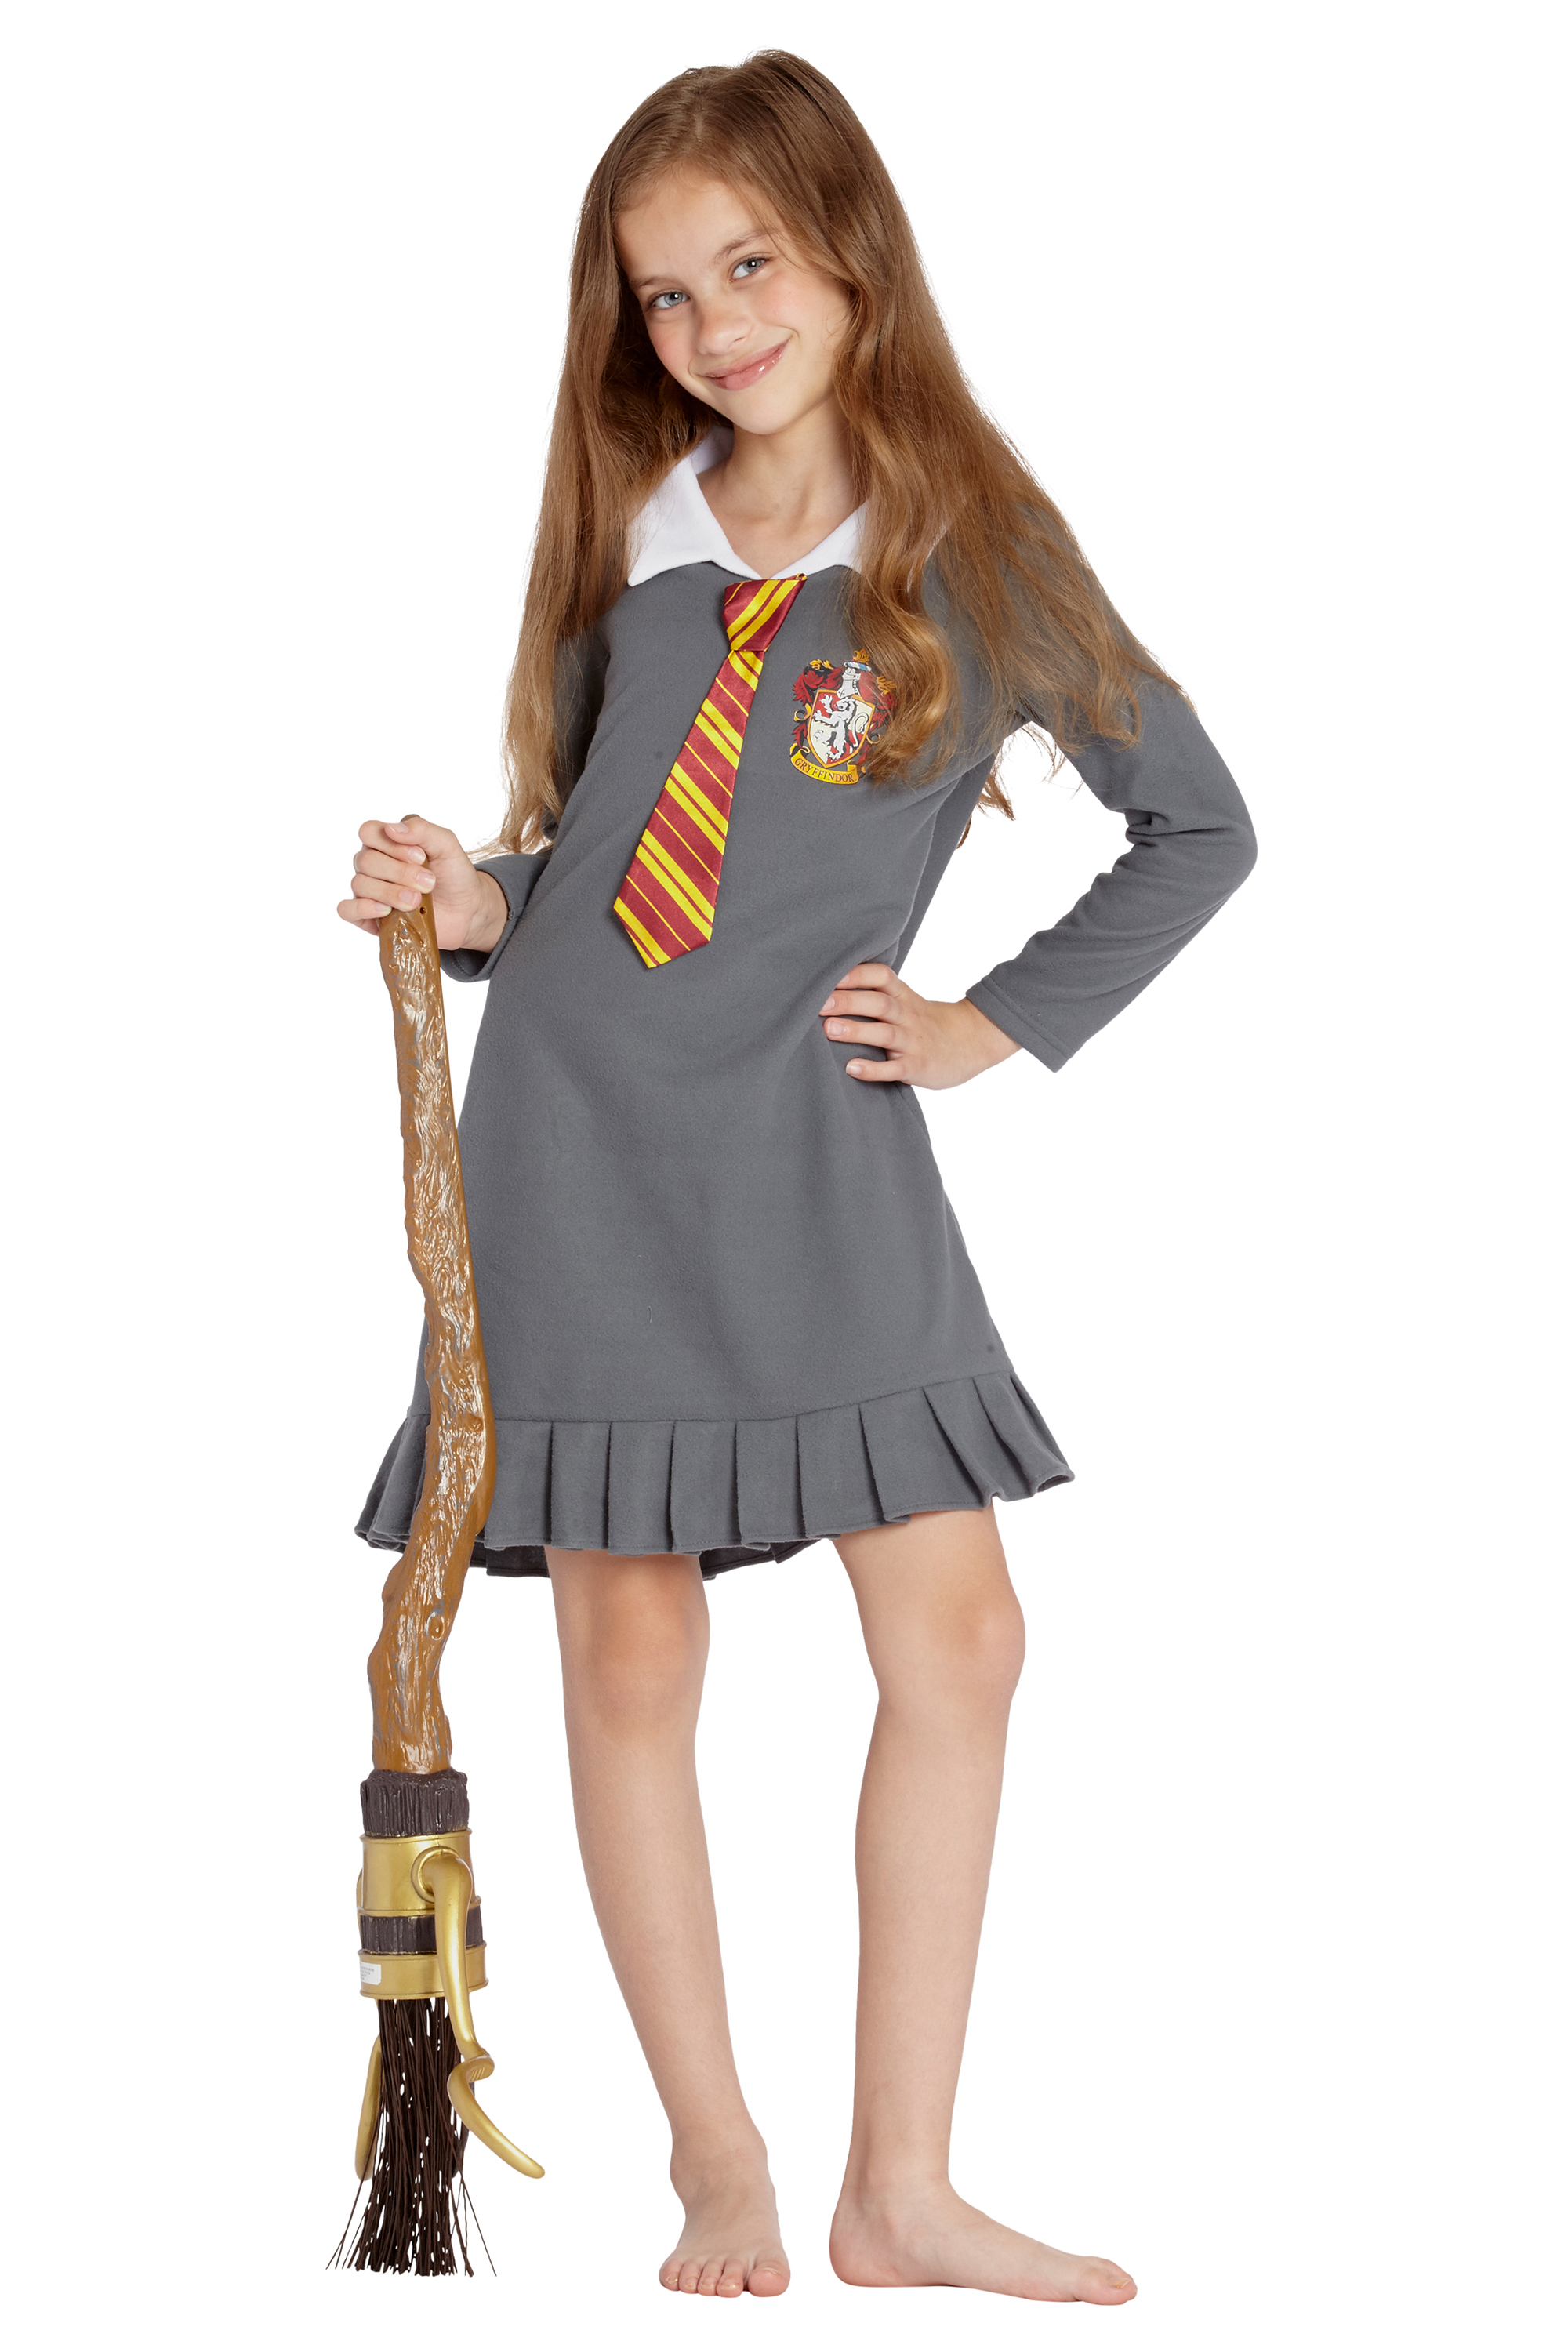 Harry Potter Pajama Girls' Hermione Gryffindor Uniform With Tie Fleece Nightgown Costume